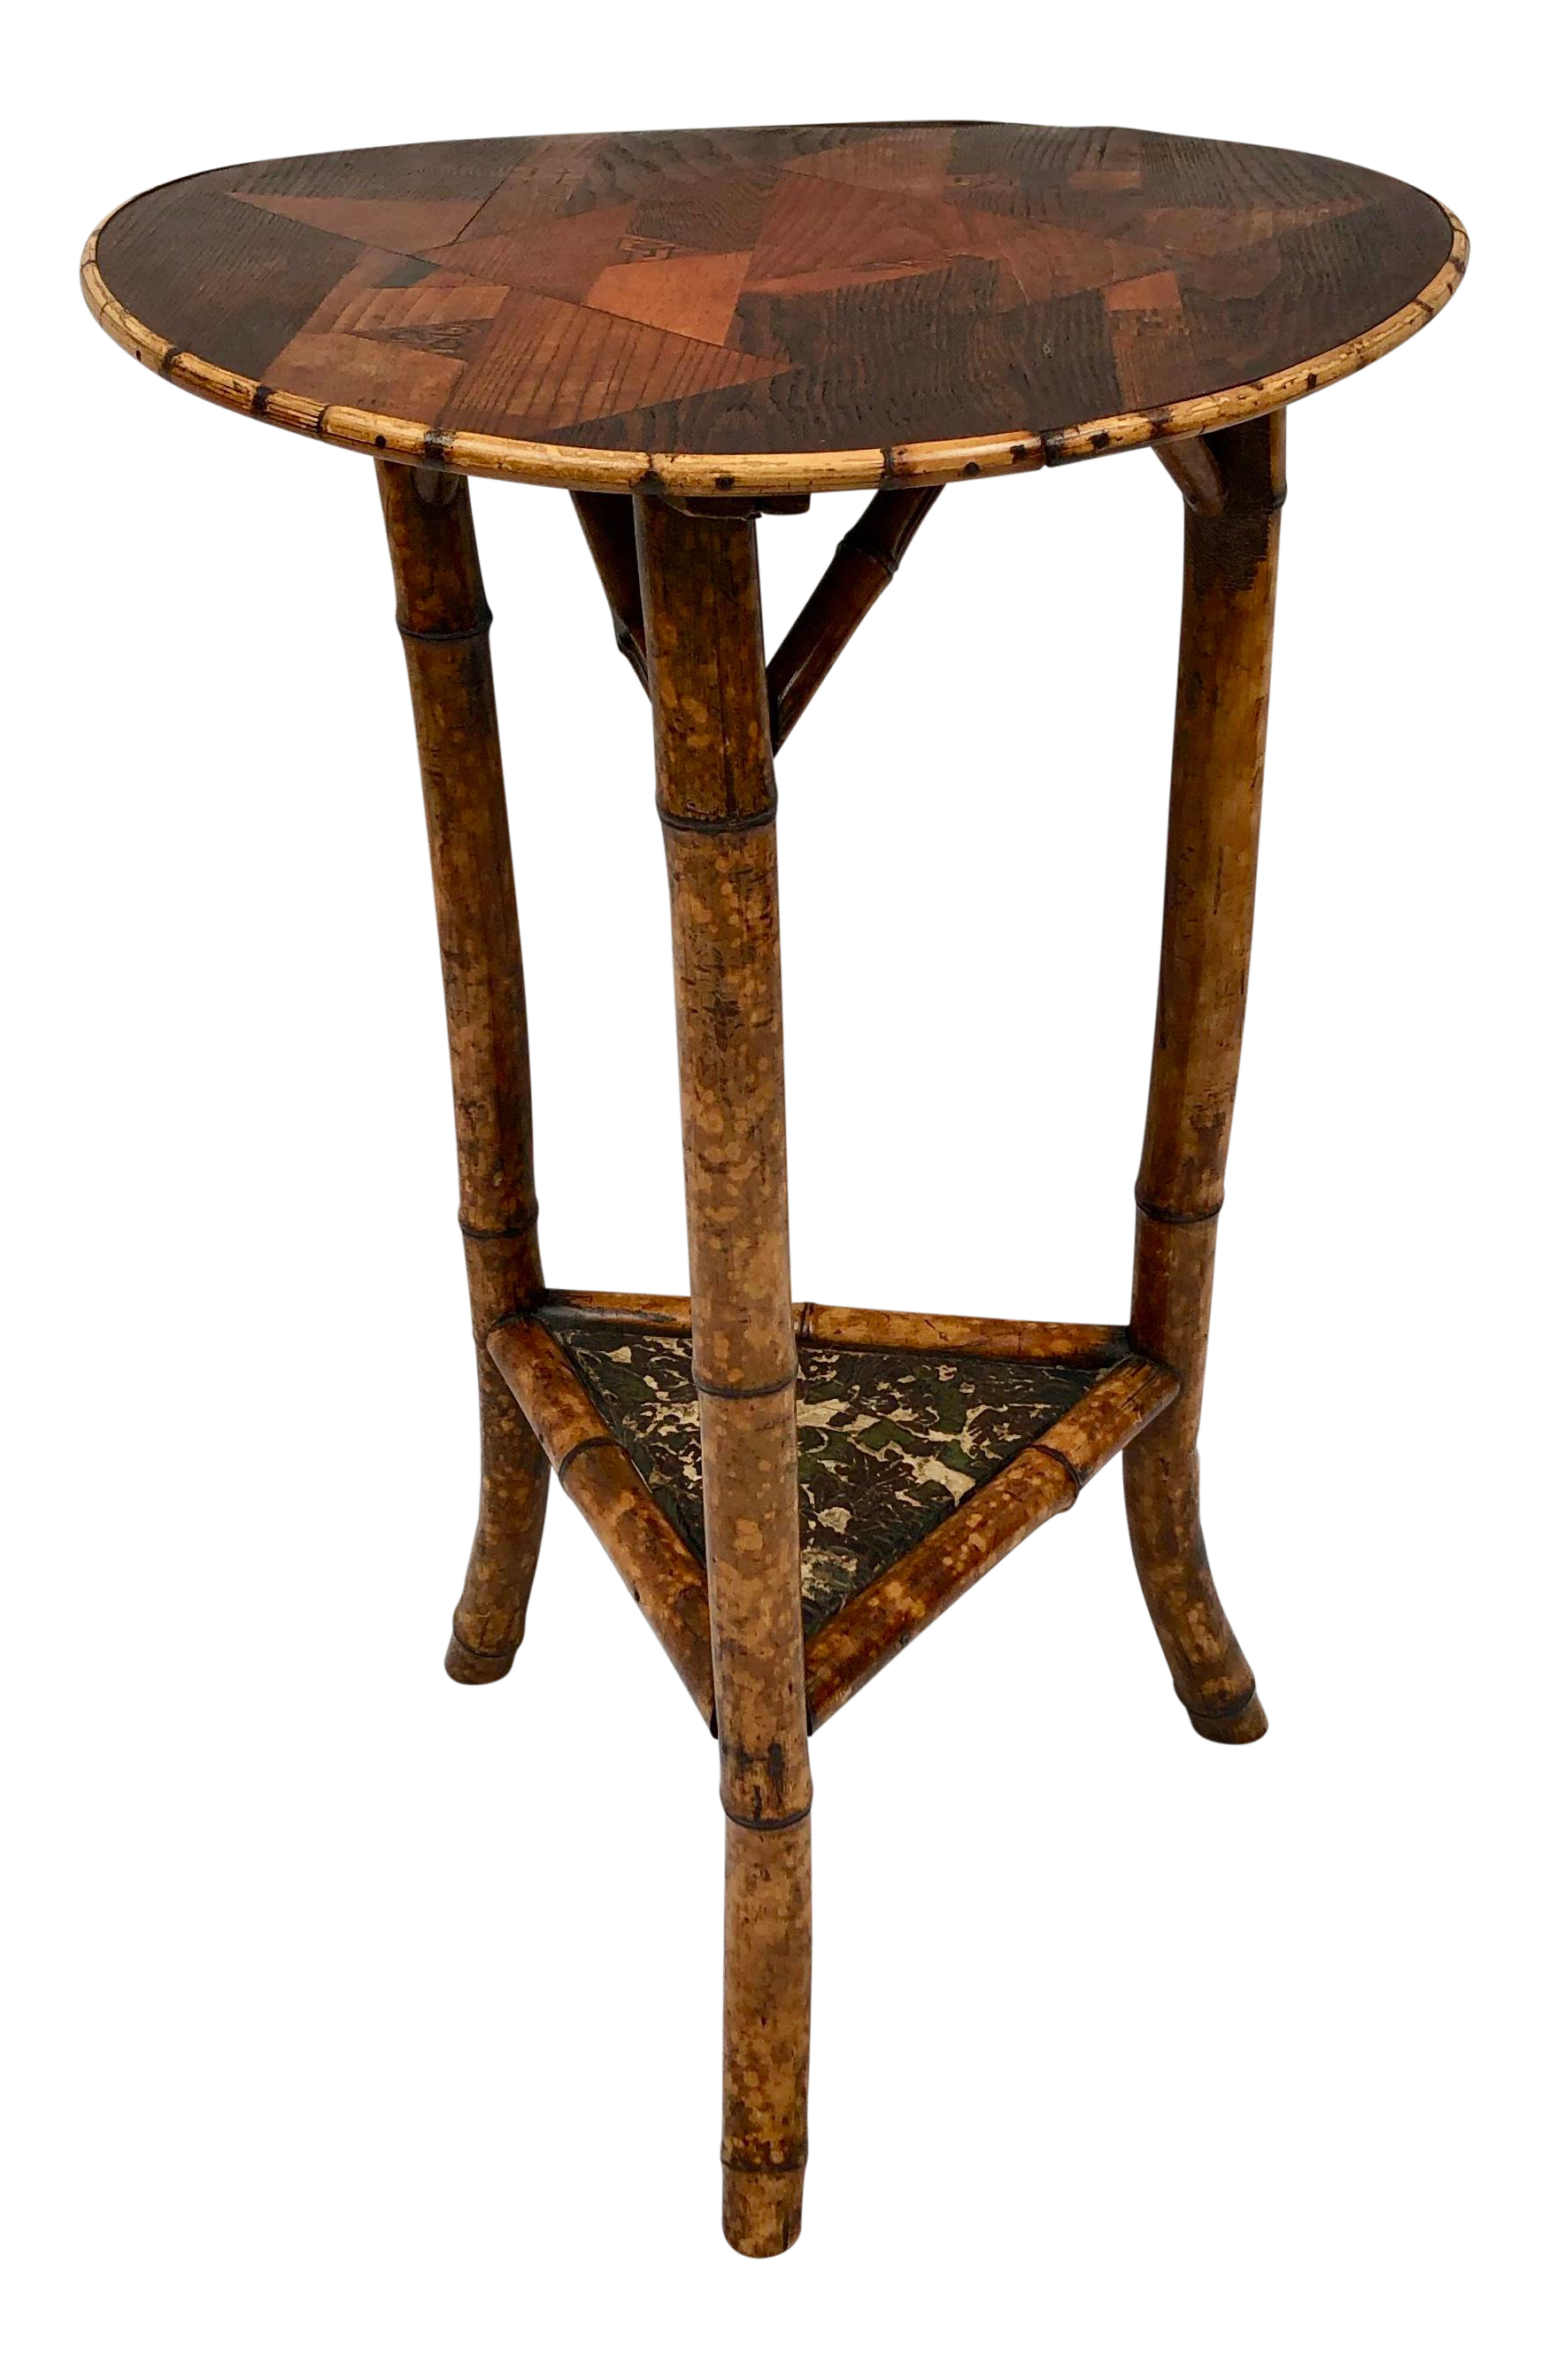 Astounding 1970S Asian Round Tortoiseshell Bamboo Accent Table With Download Free Architecture Designs Scobabritishbridgeorg